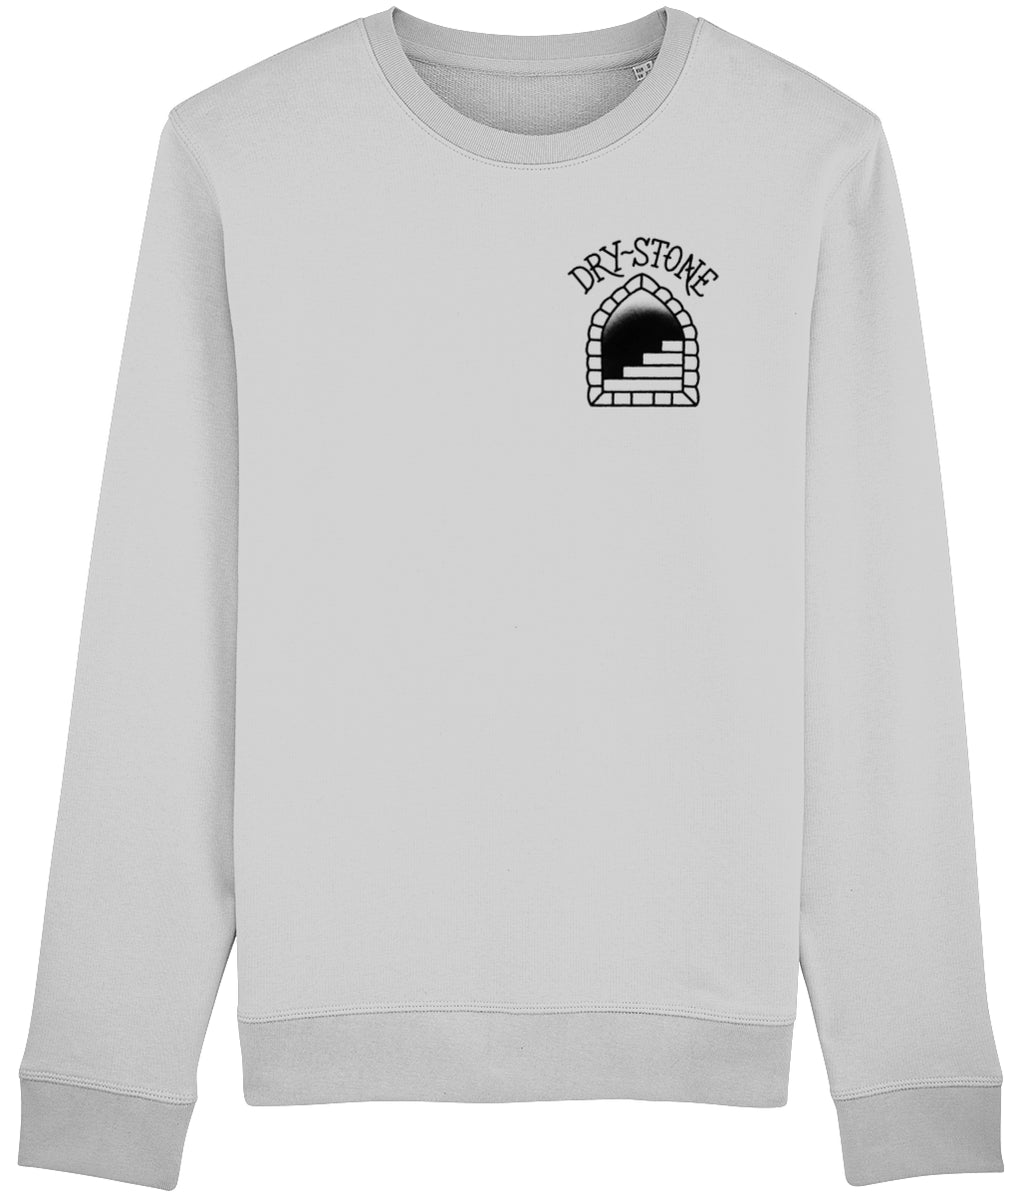 tattoo inspired Clothing X-Small Snake & Skull - Grey Sweatshirt